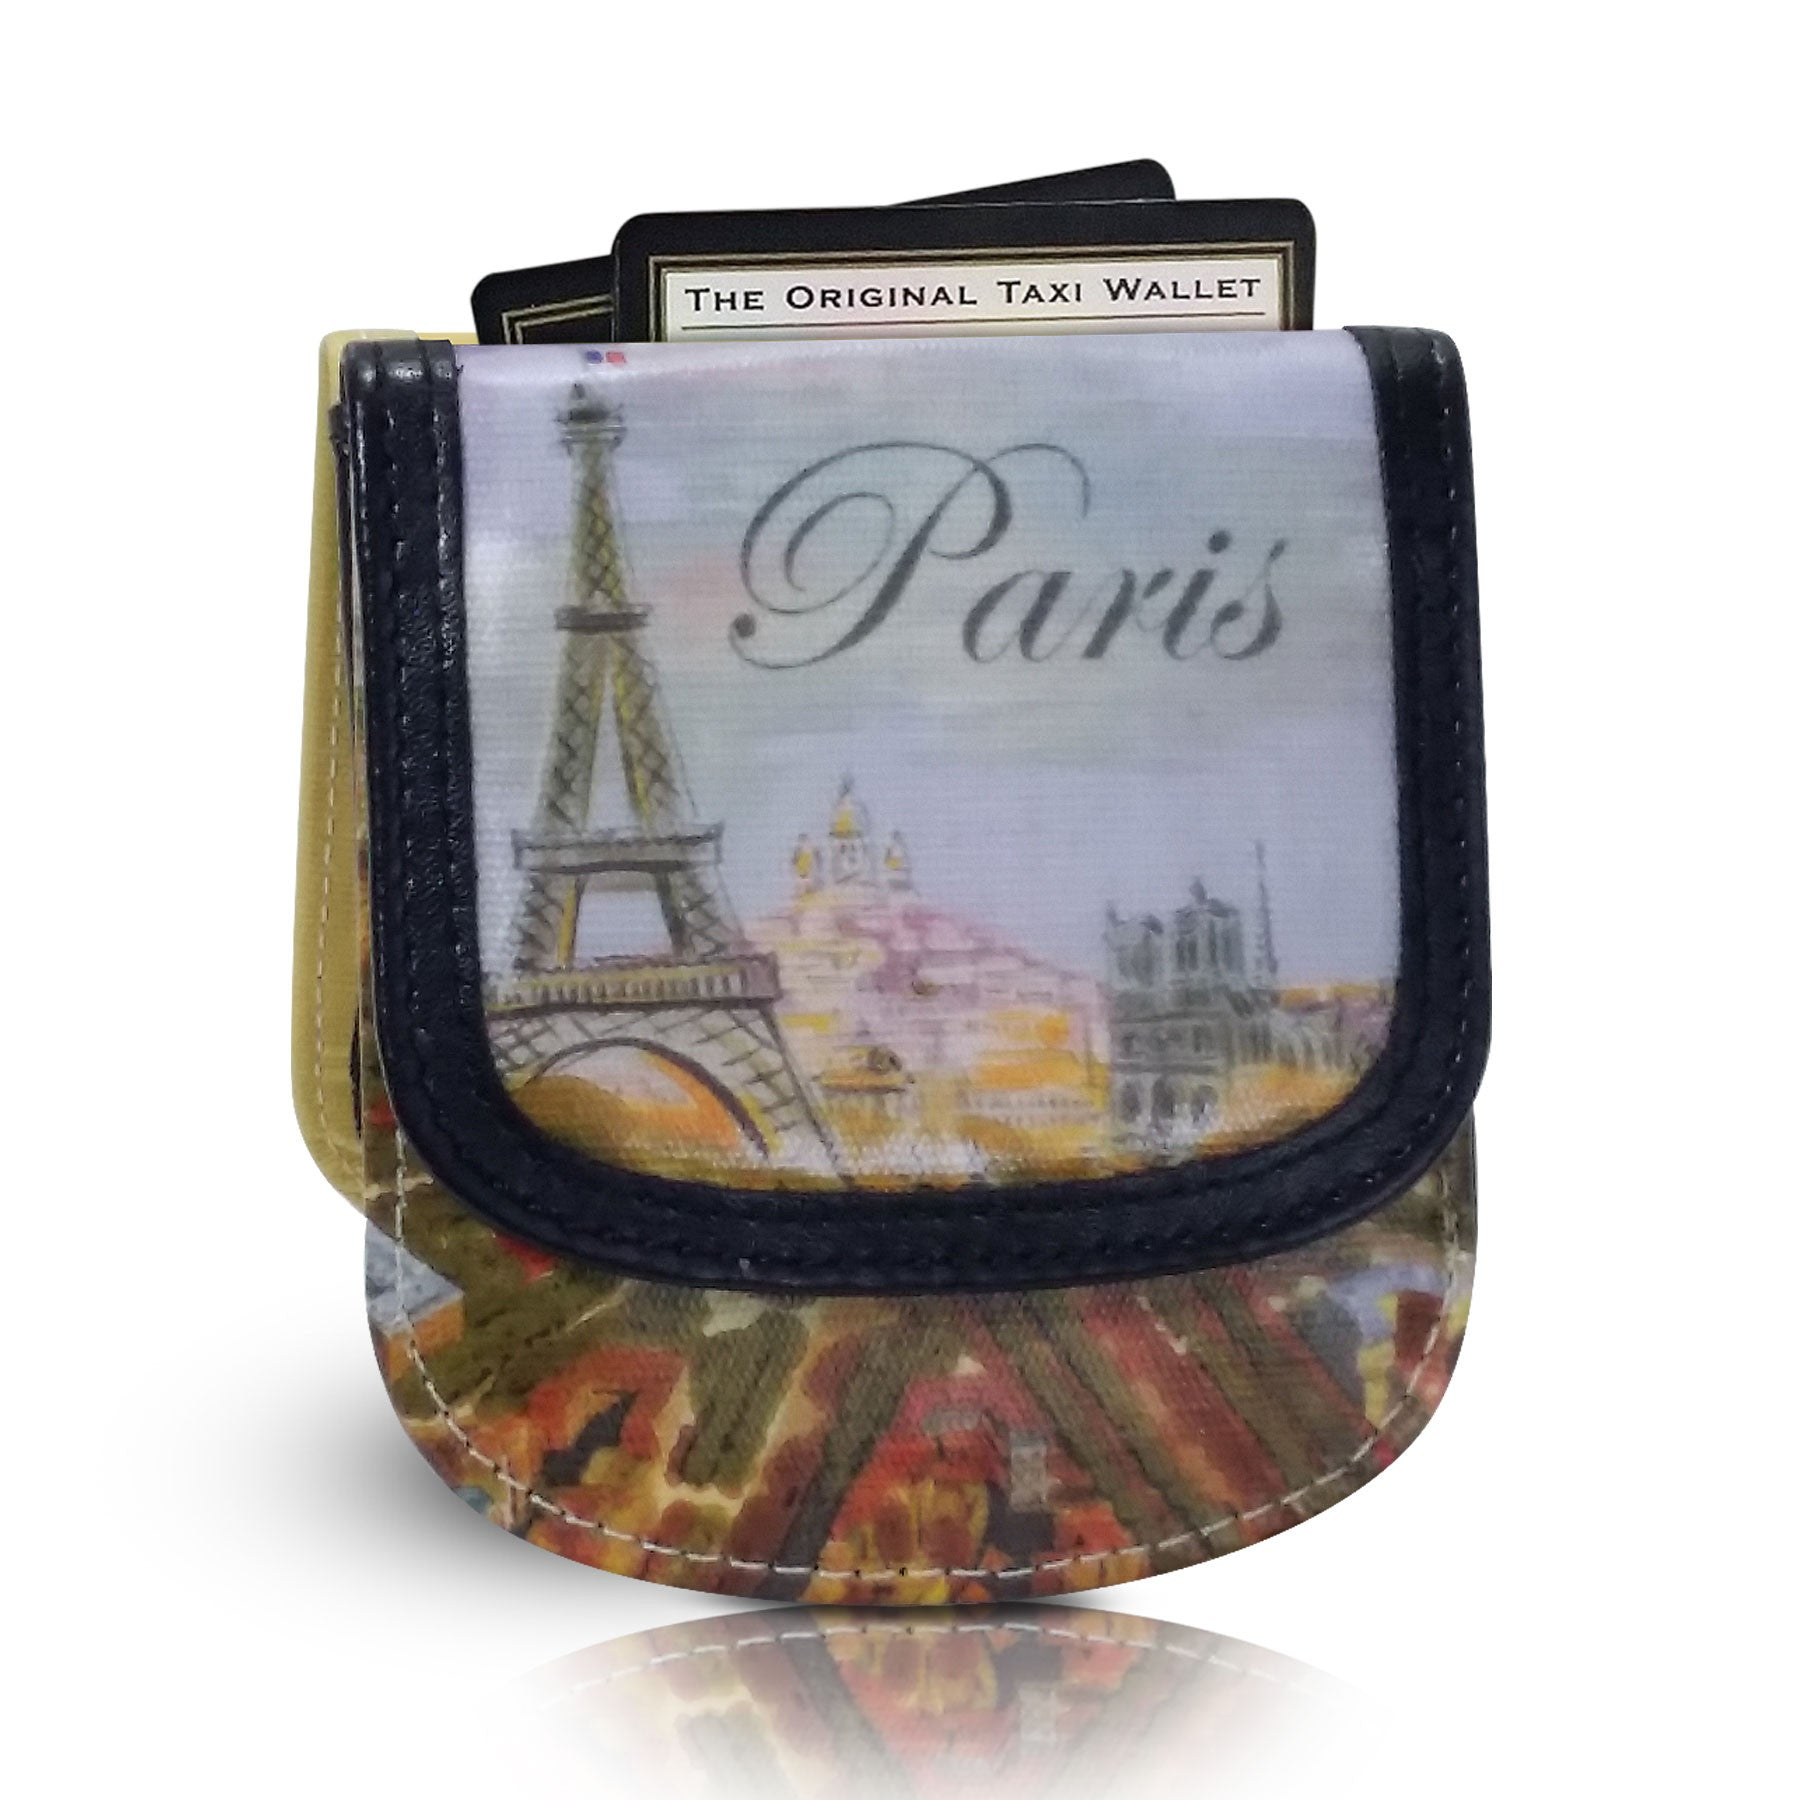 PARIS - Vegan Non-Leather. Compact coin, bill, and card wallet. Taxi Wallet.